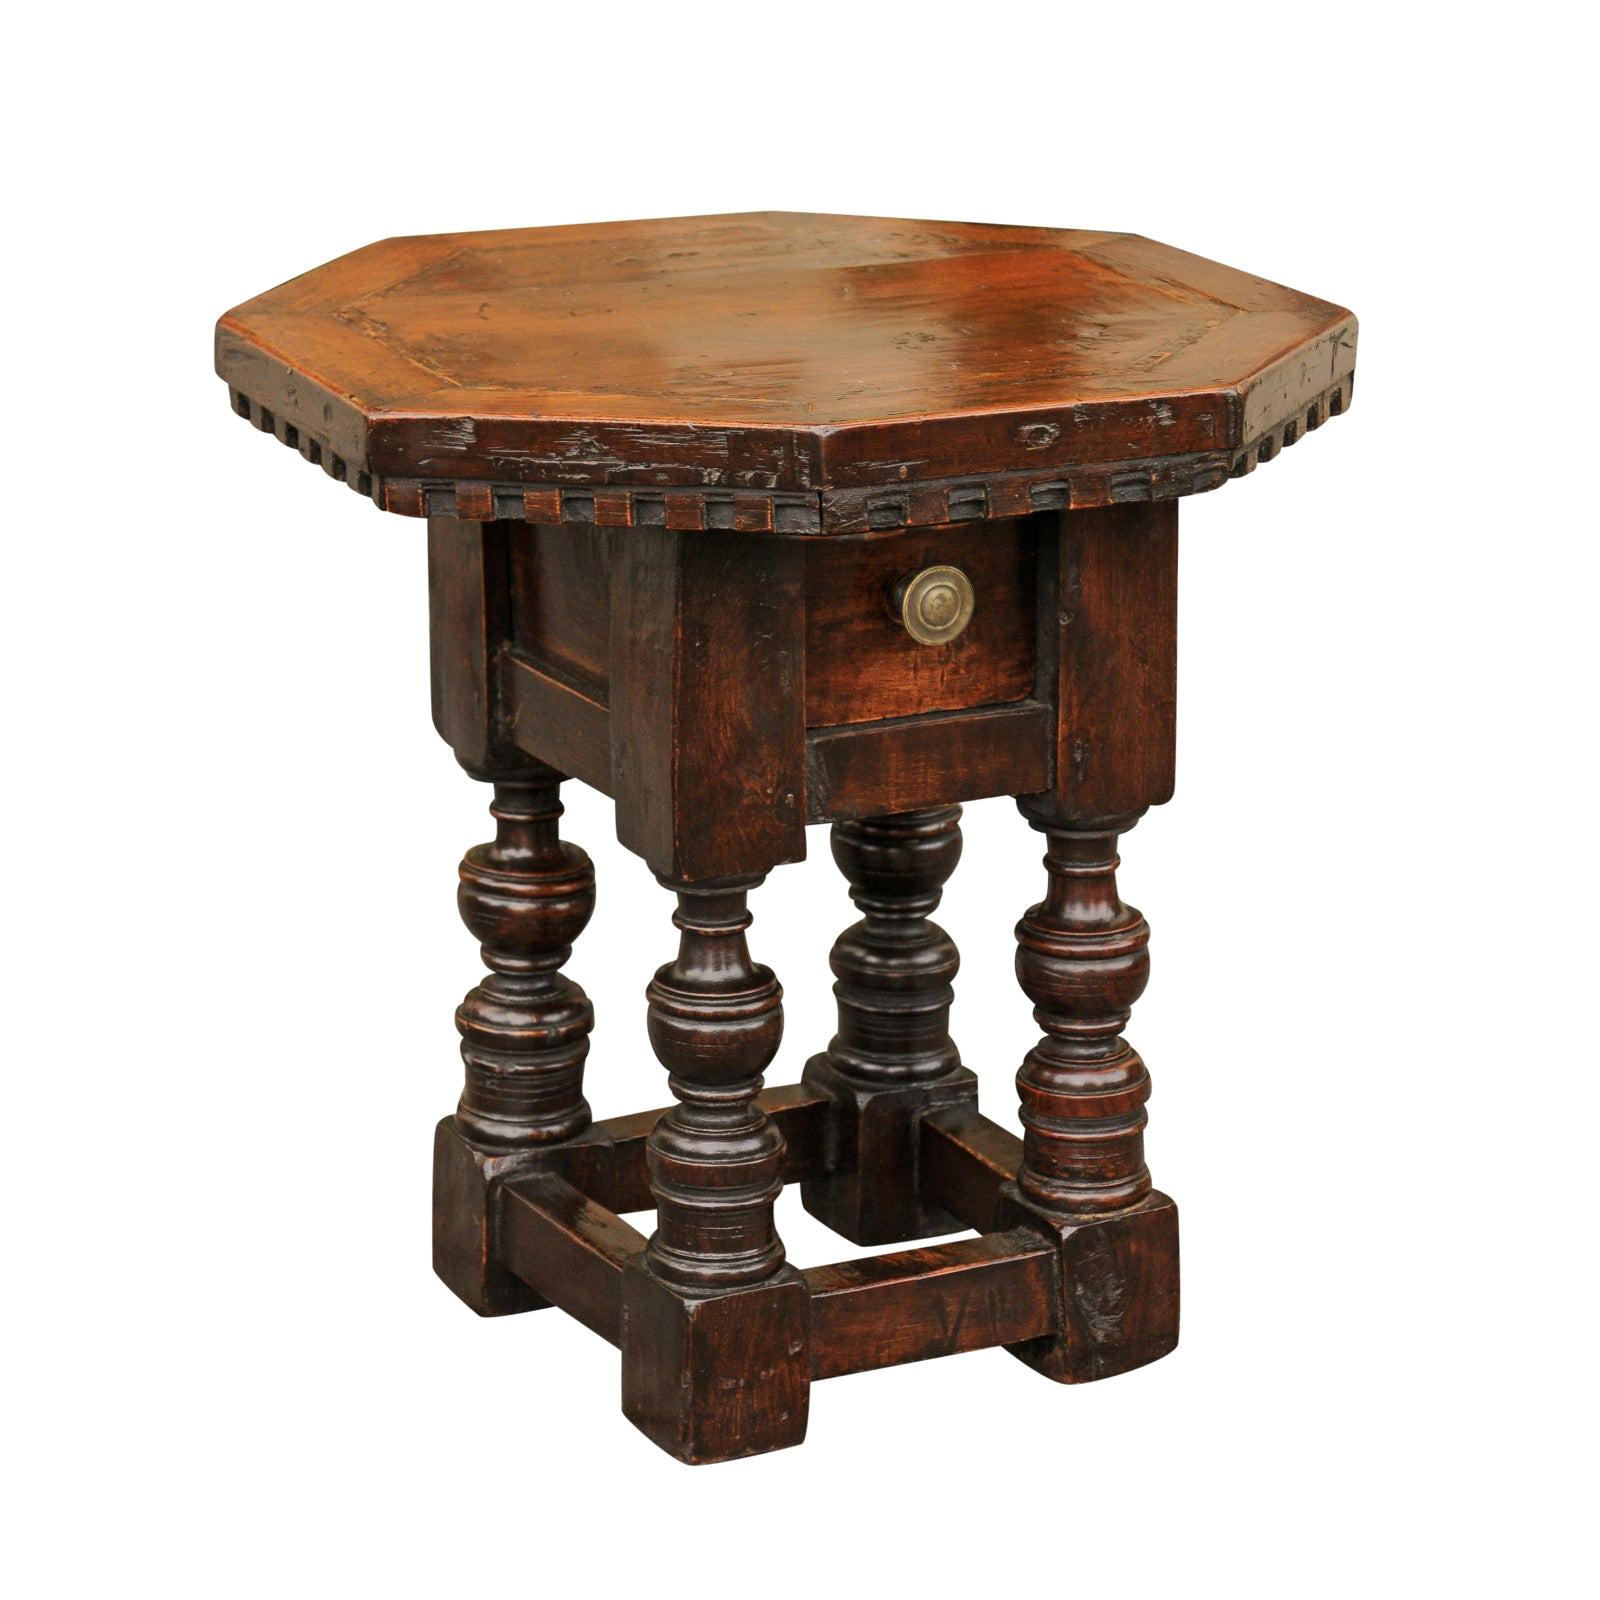 Italian 1840s Walnut Side Table with Octagonal Top, One Drawer and Turned Base